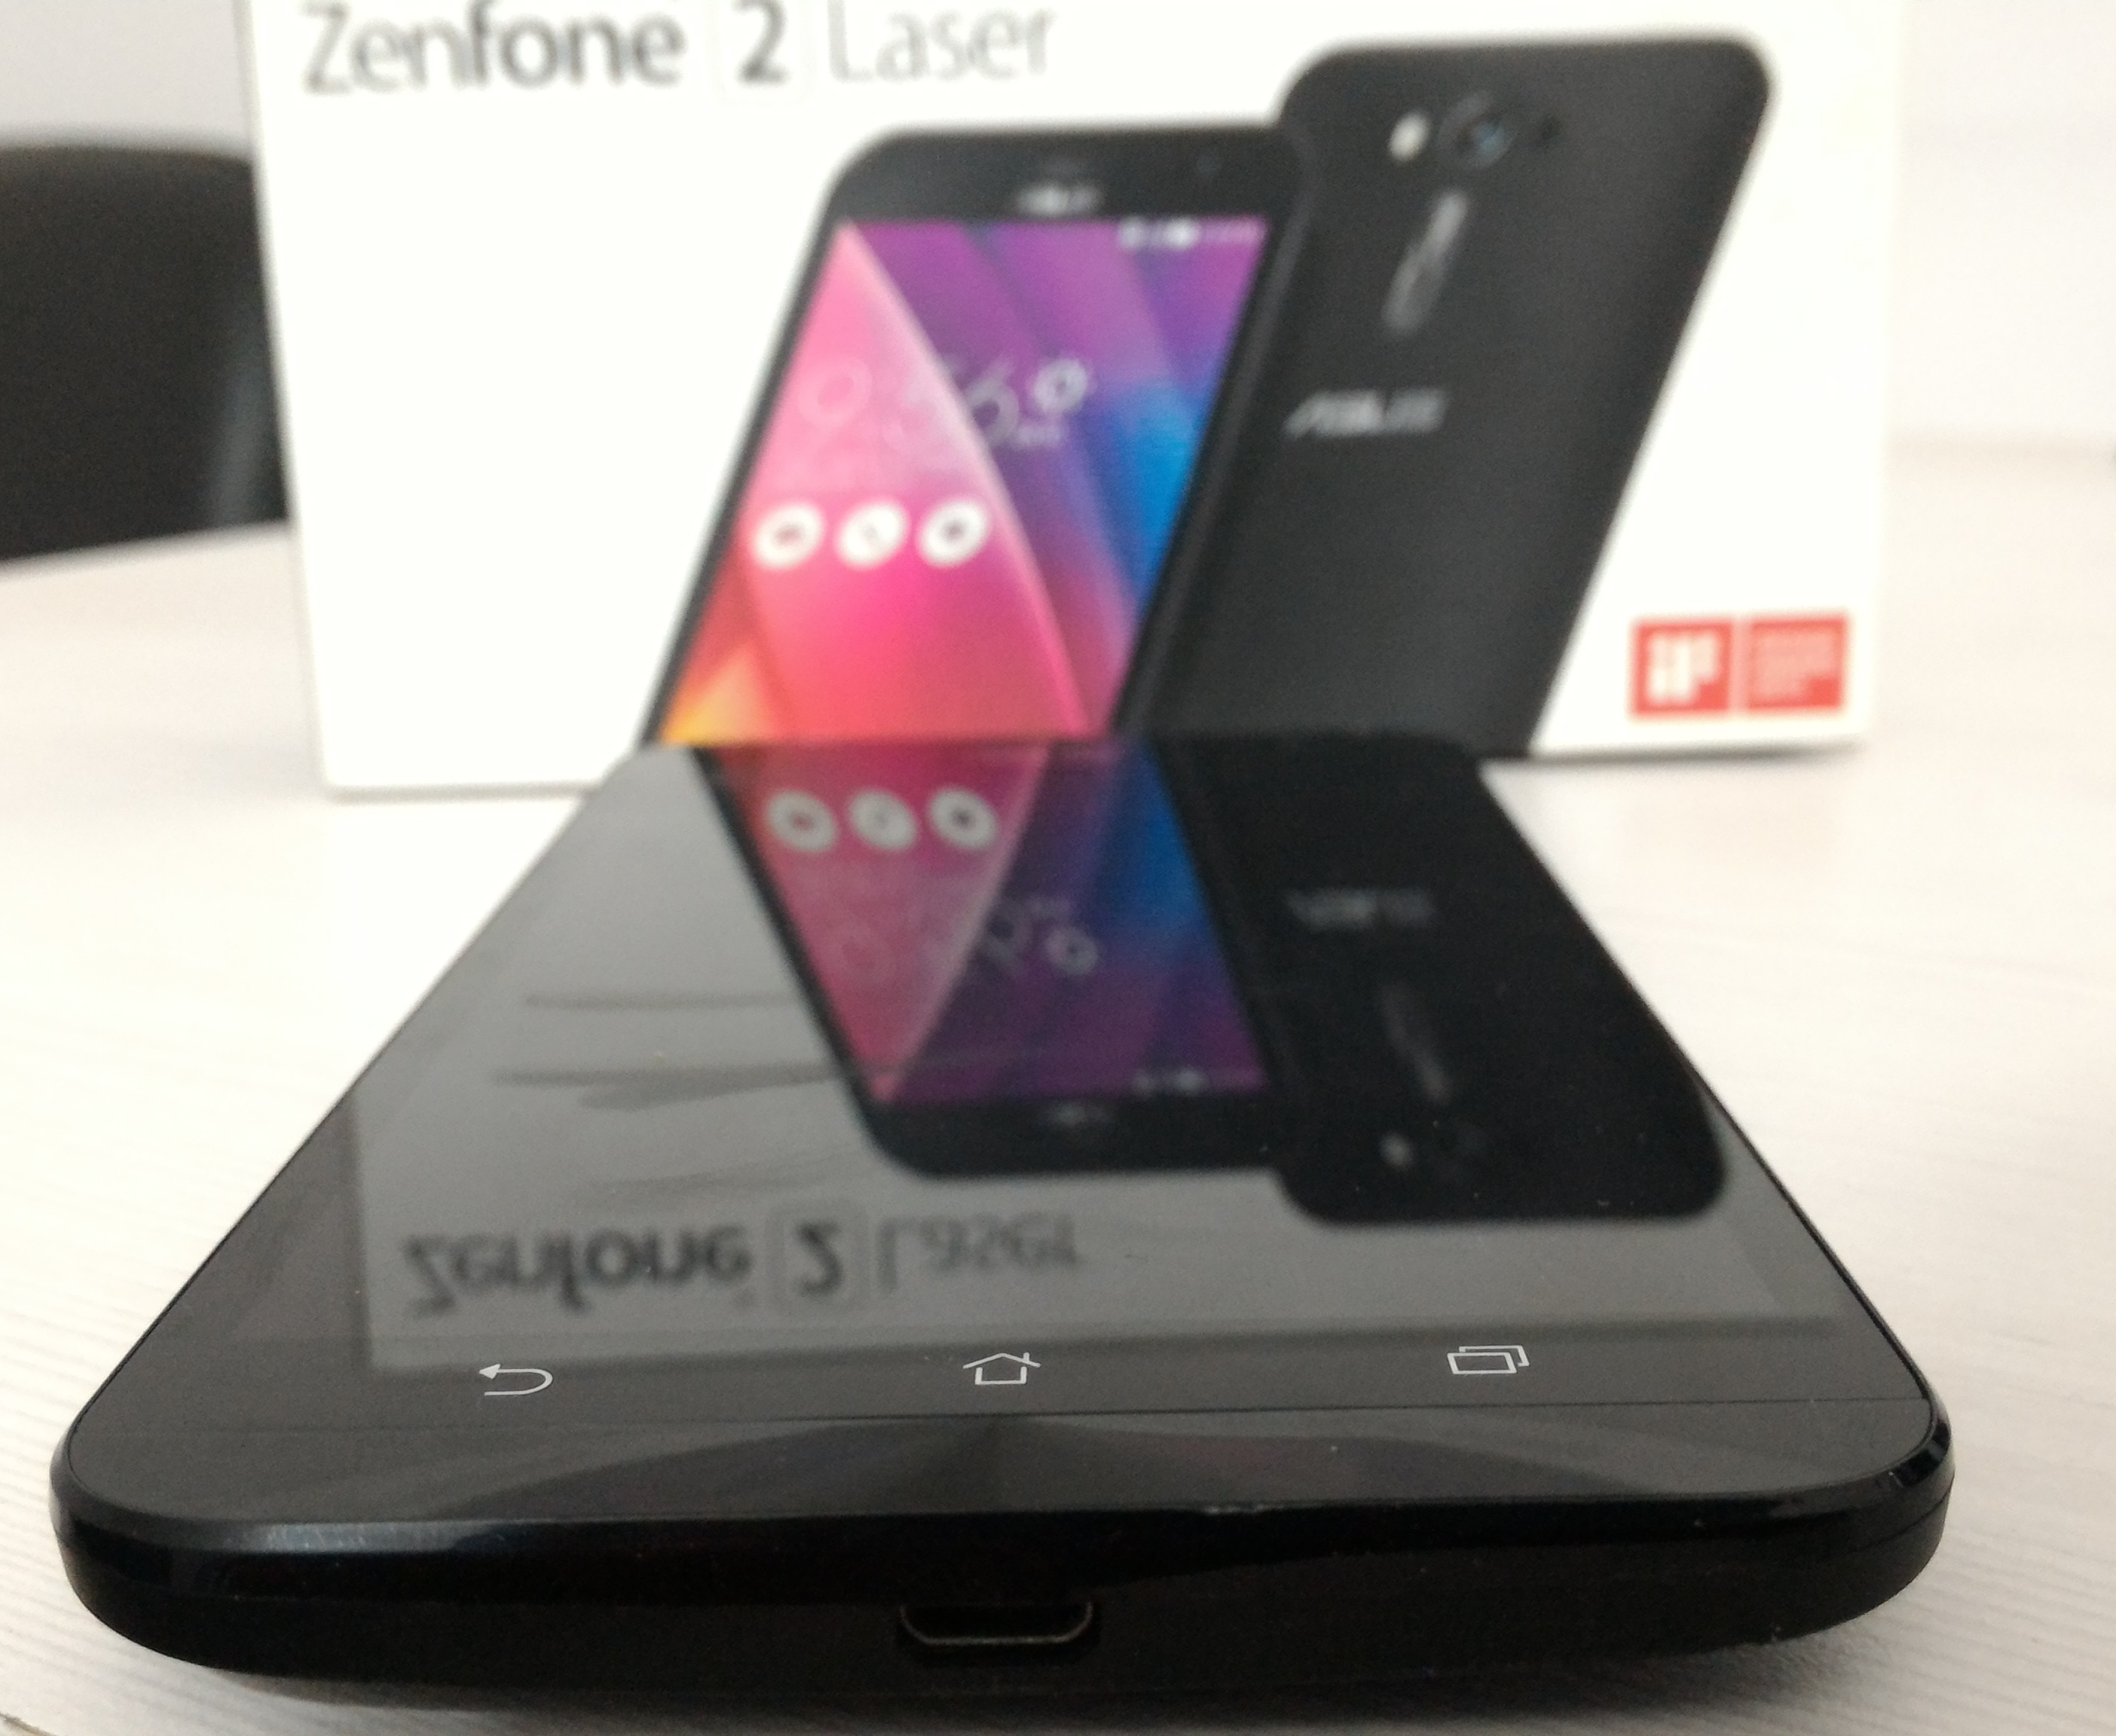 Review of ASUS Zenfone 2 Laser